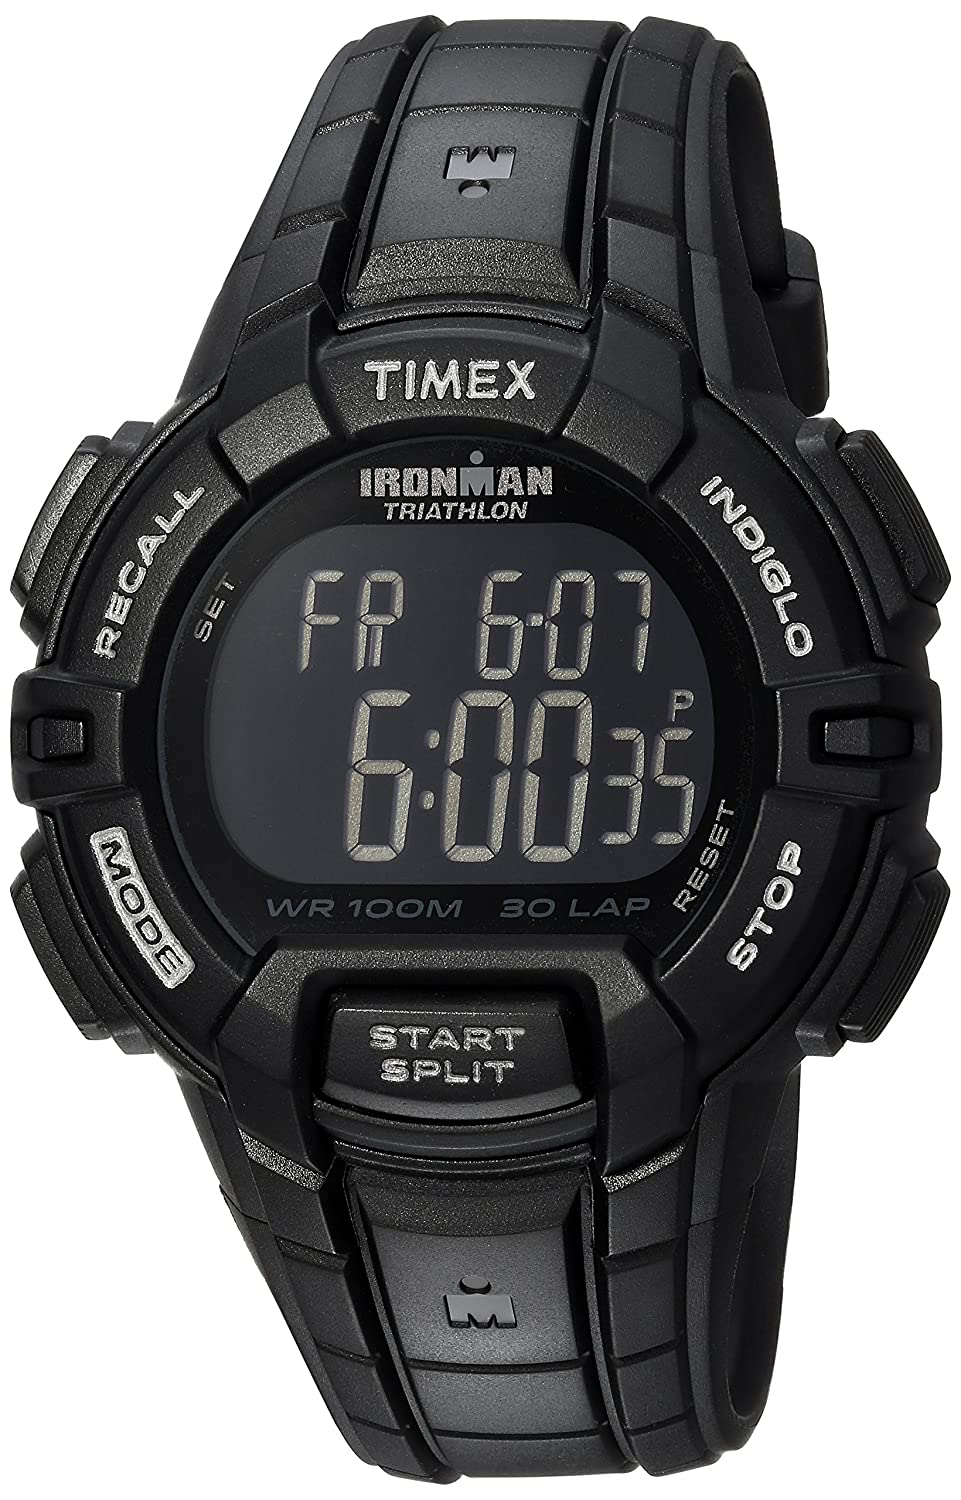 3c115e8e4601 Amazon.com  Timex Ironman Rugged 30 Full-Size Watch  Timex  Watches